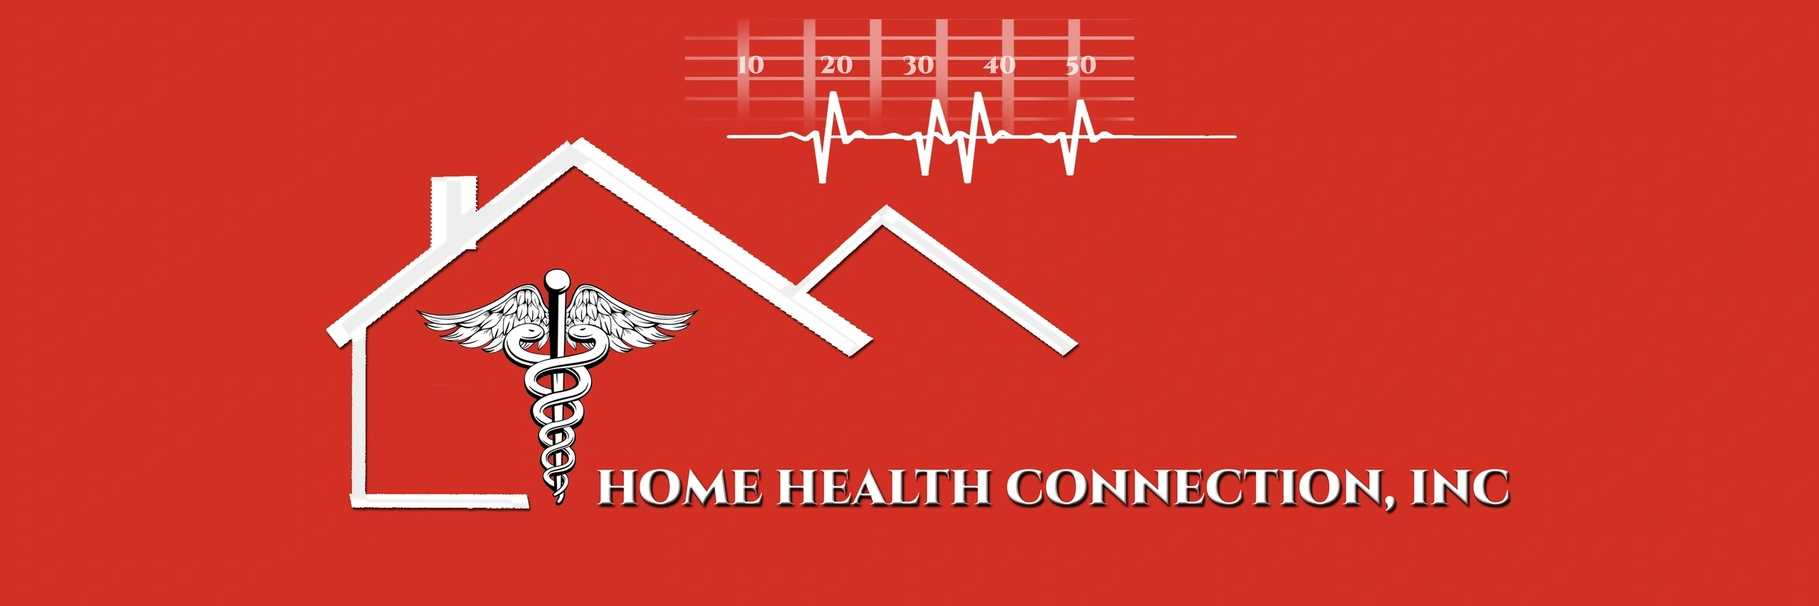 Home Health Connection, Inc